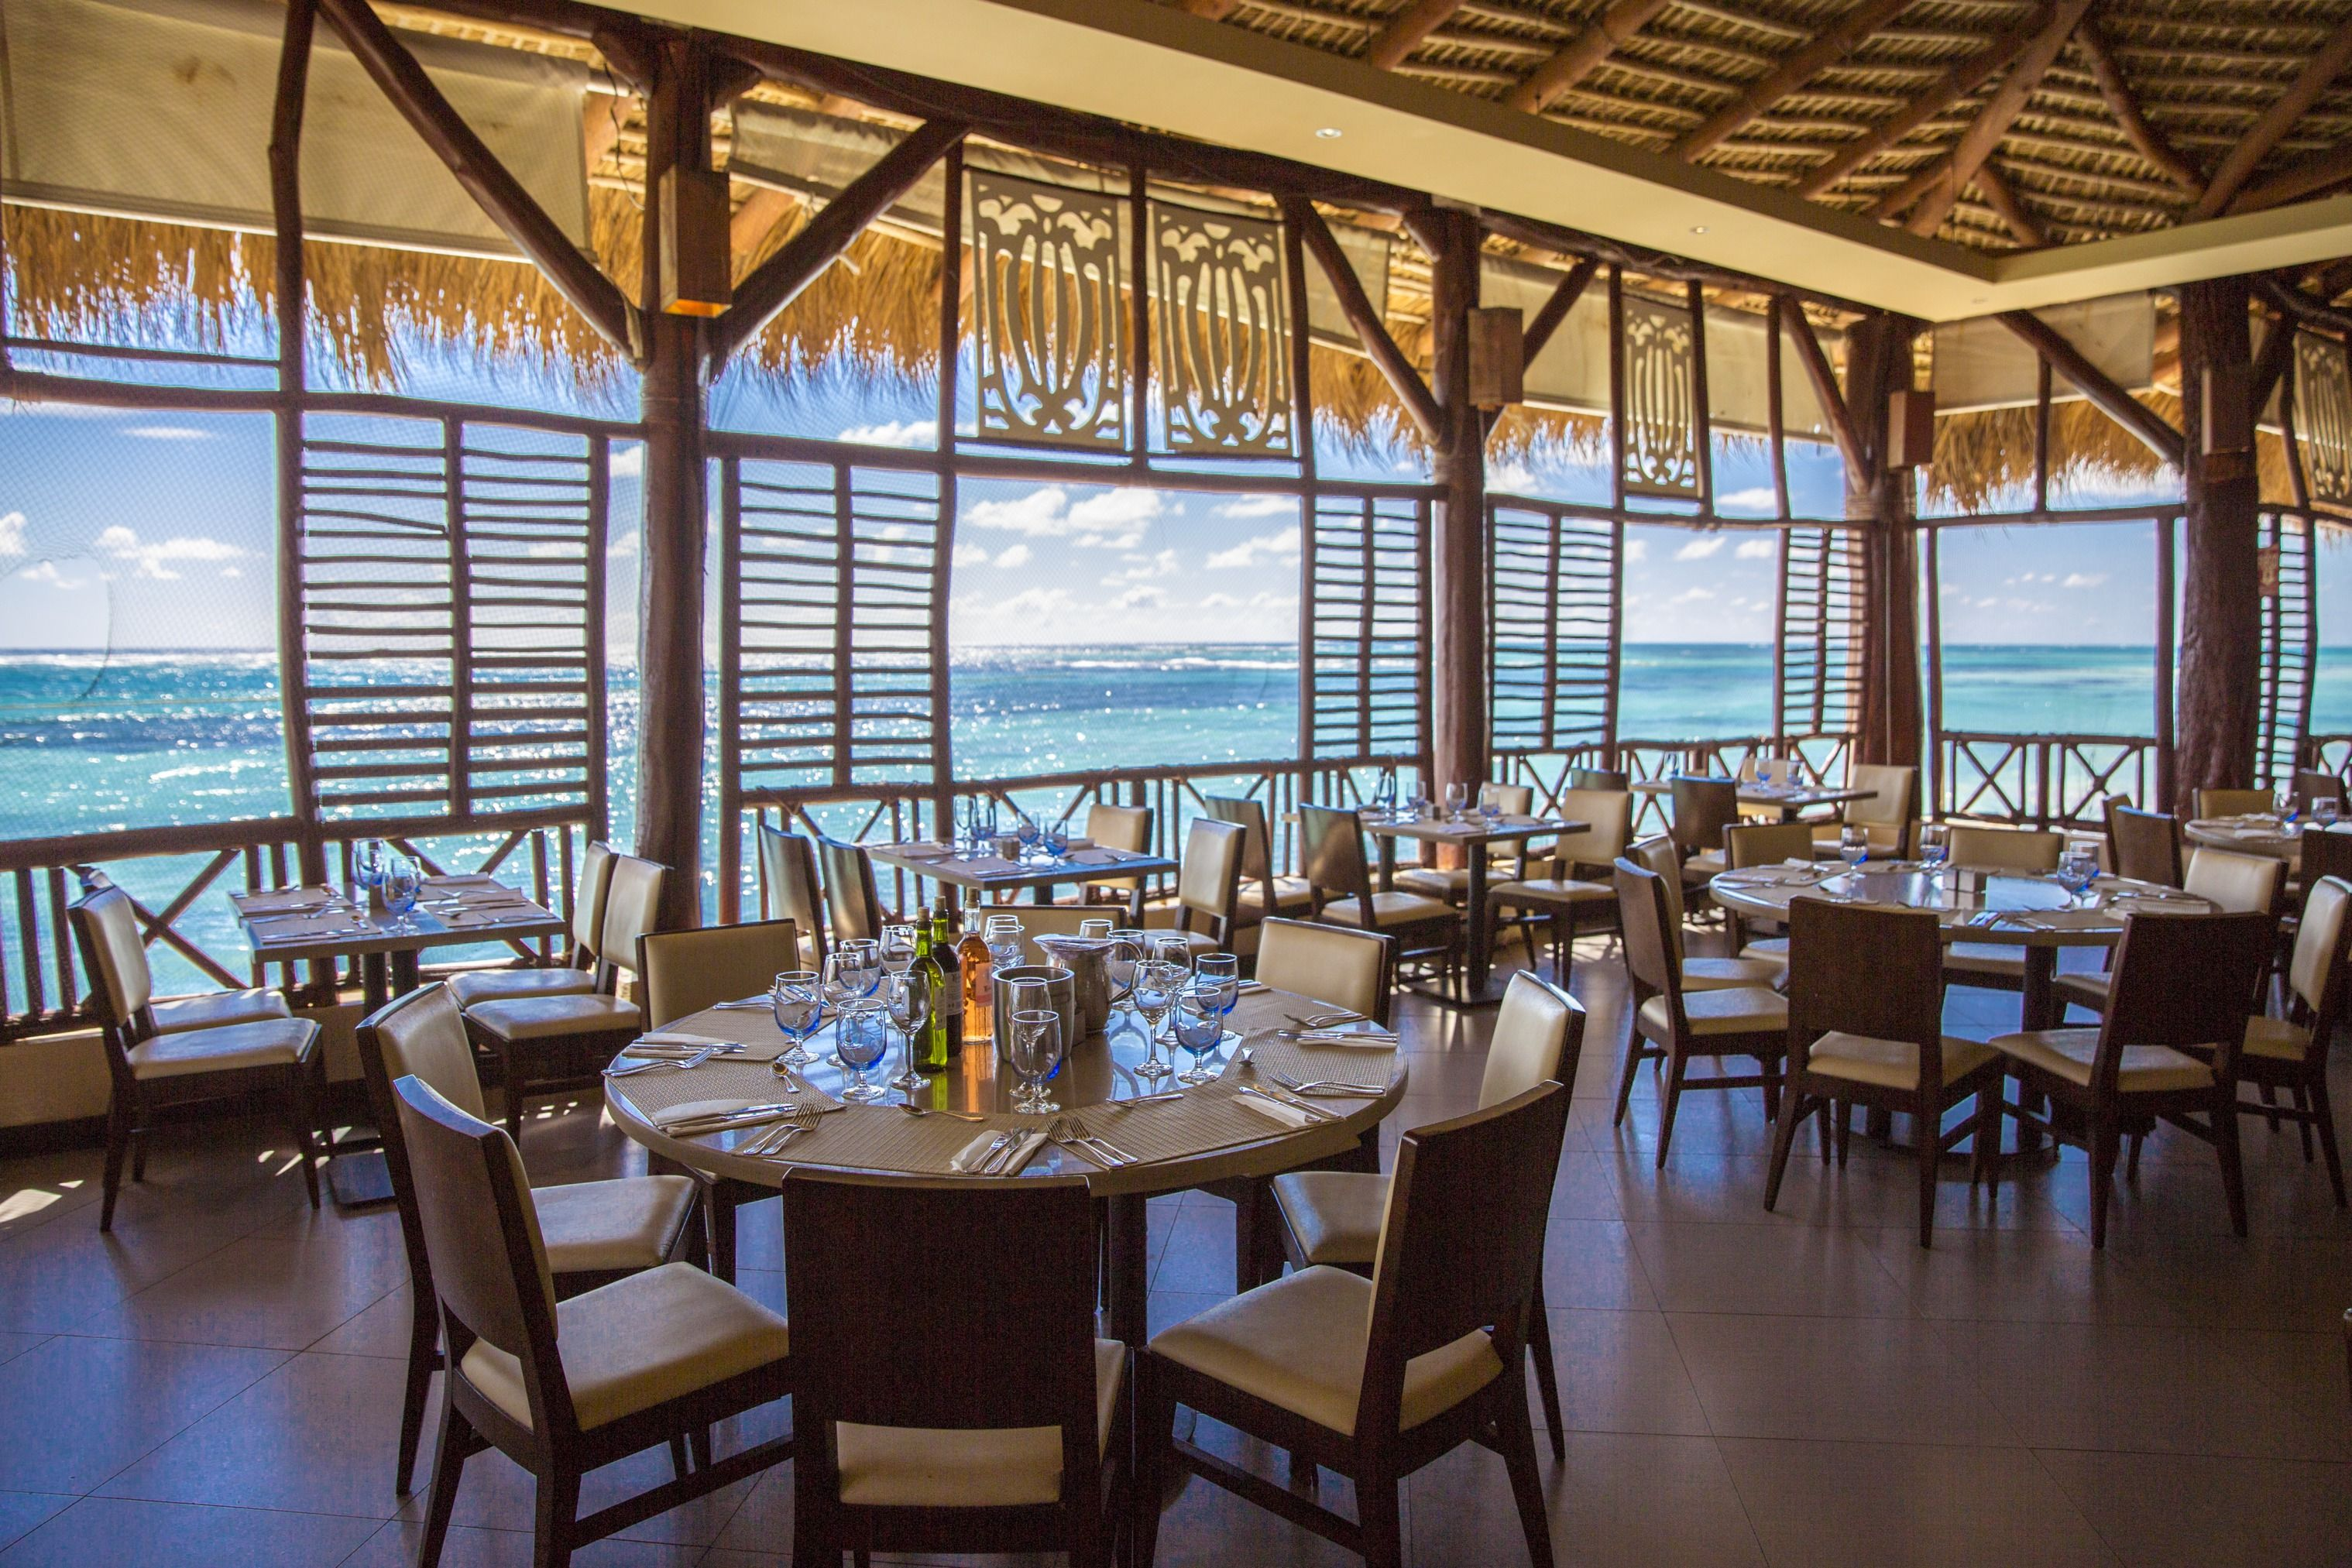 the turquoise waters of the sea lie at the foot of this restaurant